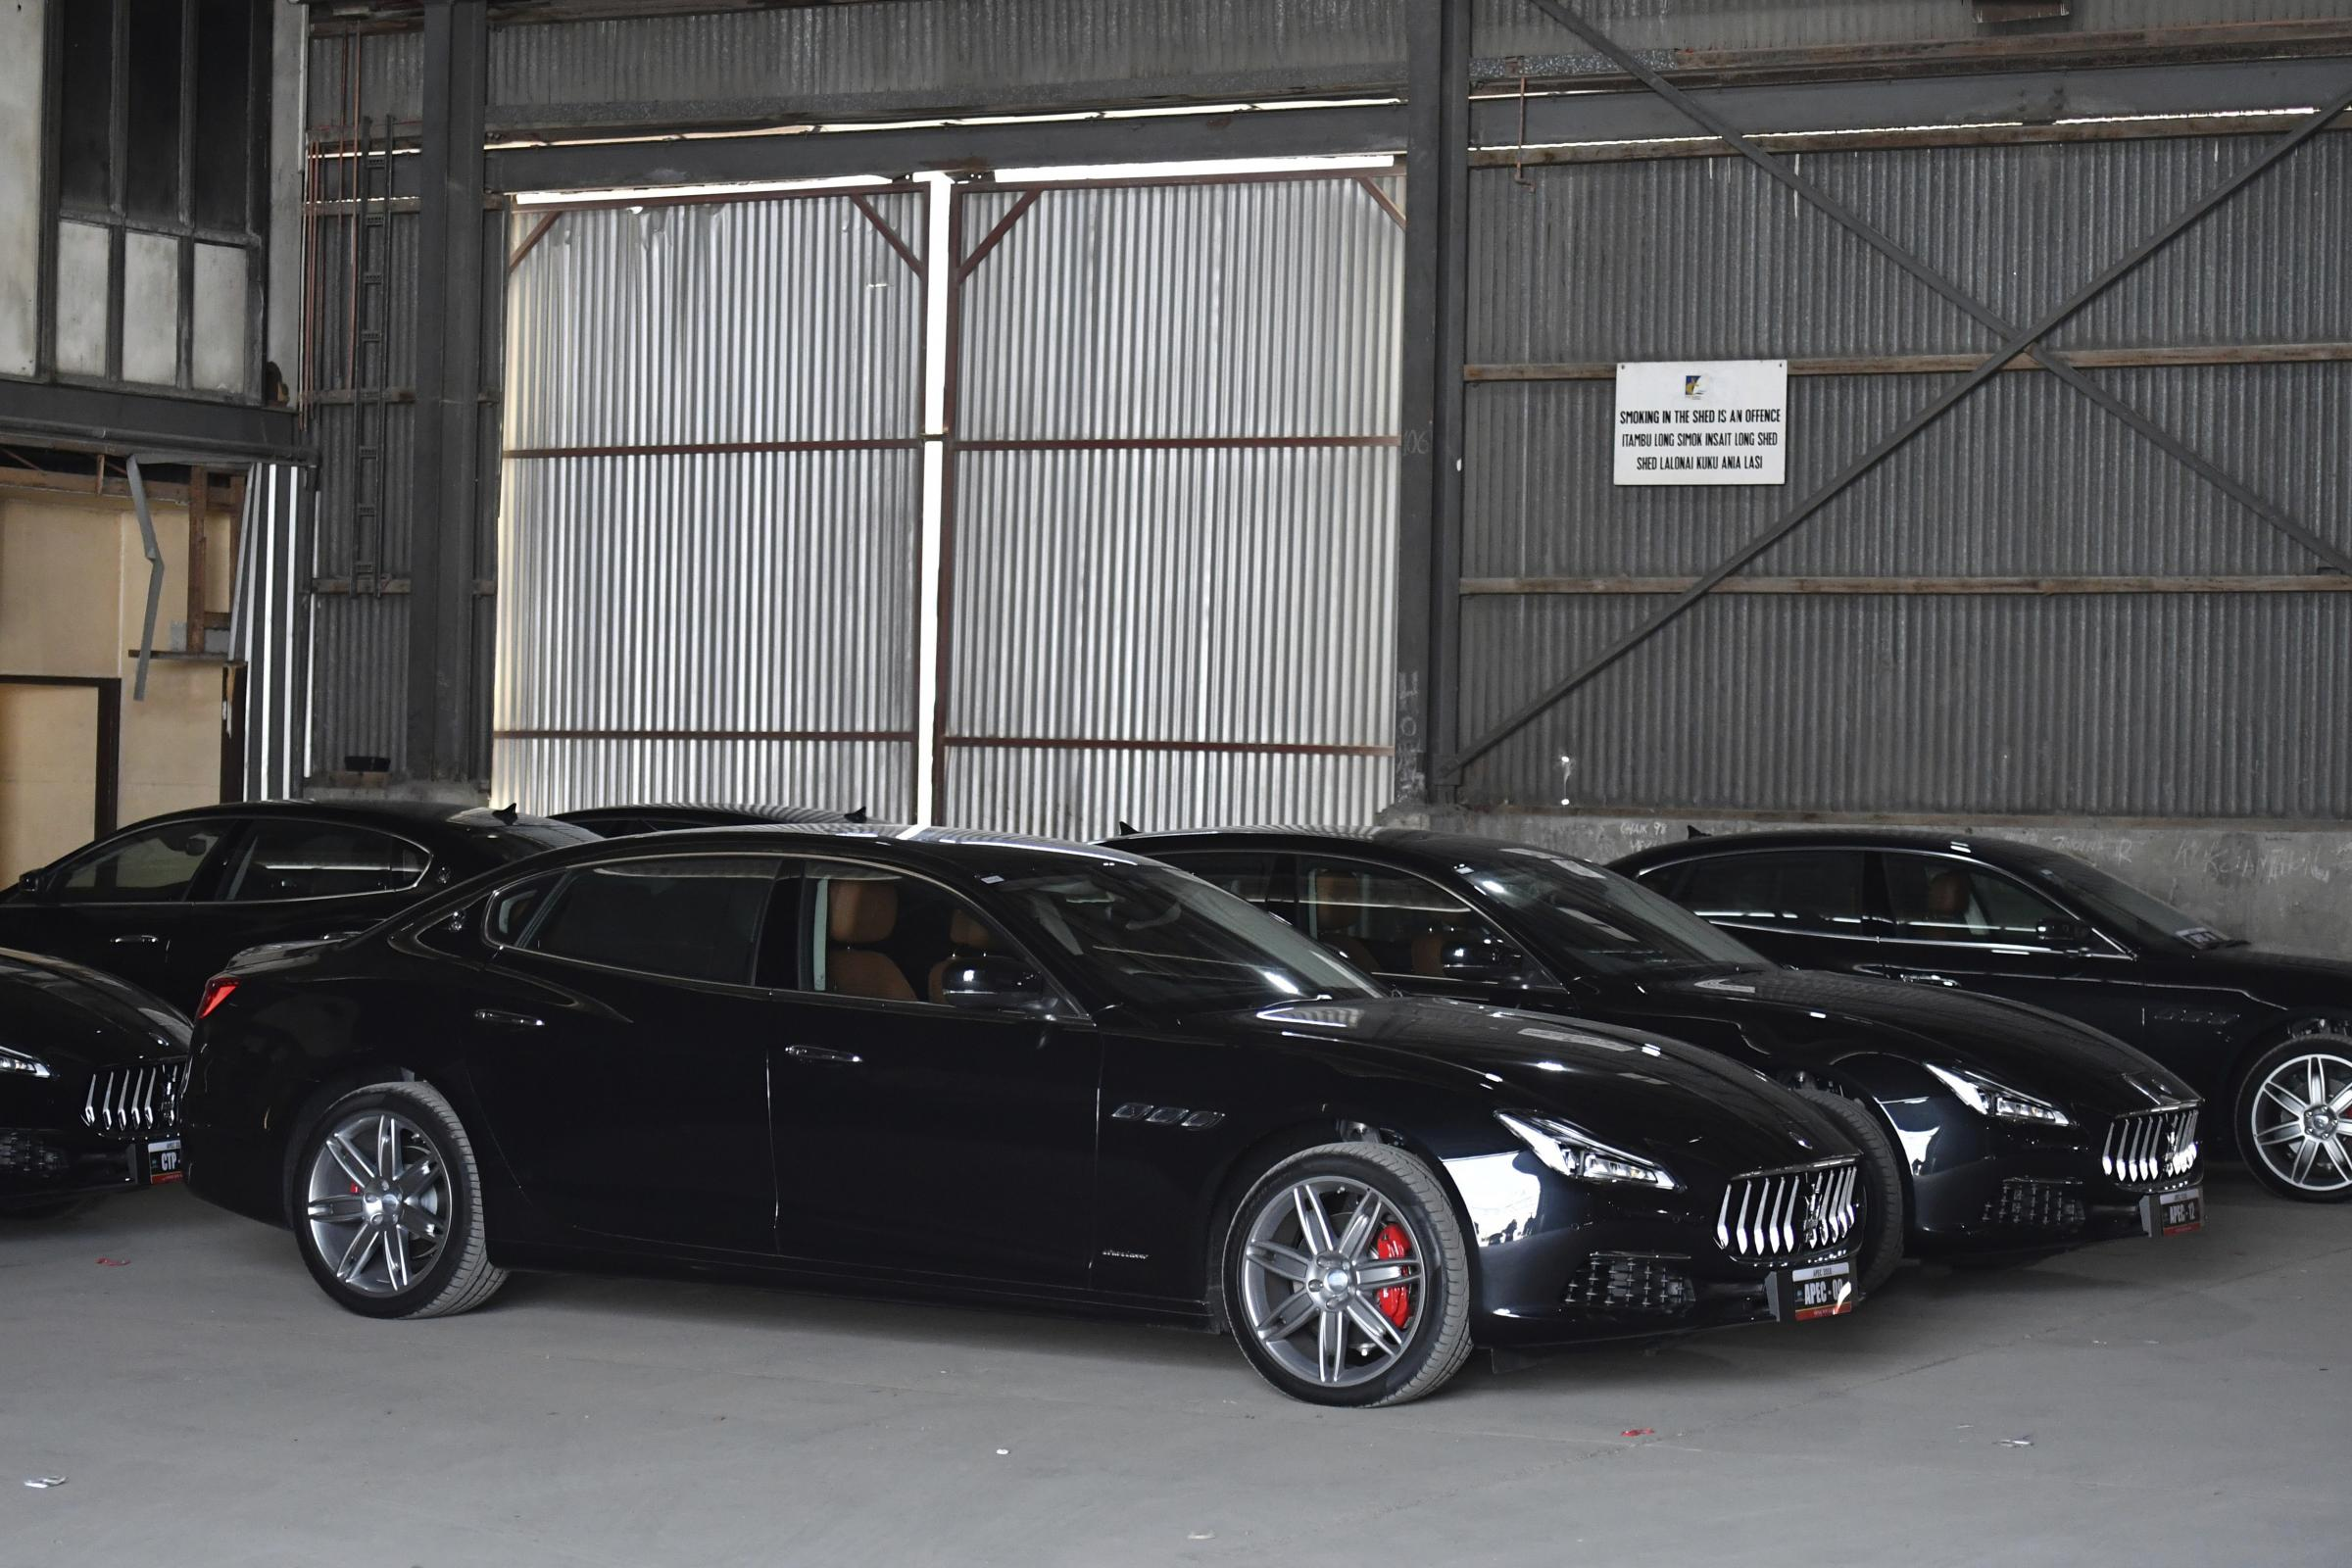 A selection of Maserati cars